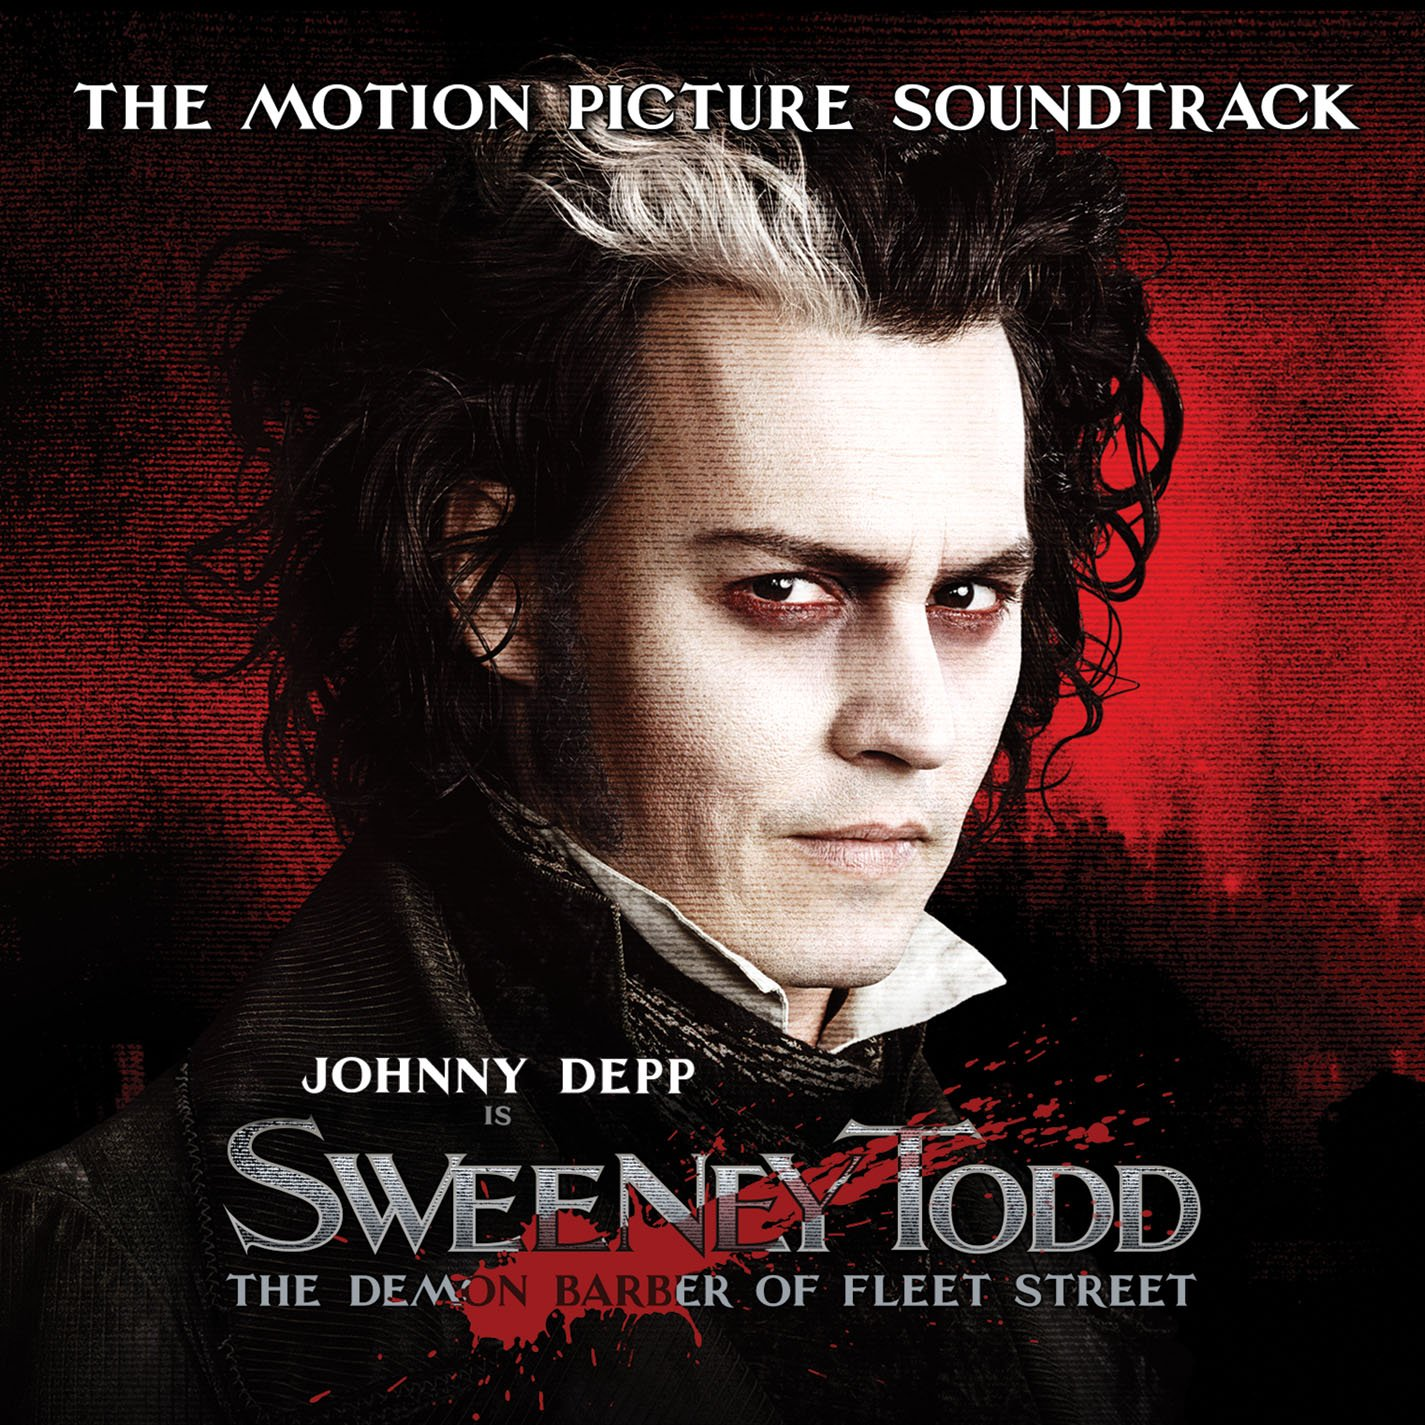 Sweeney Todd: The New Shipping Free Shipping Demon Barber quality assurance of Film Street 2007 Soundtr Fleet